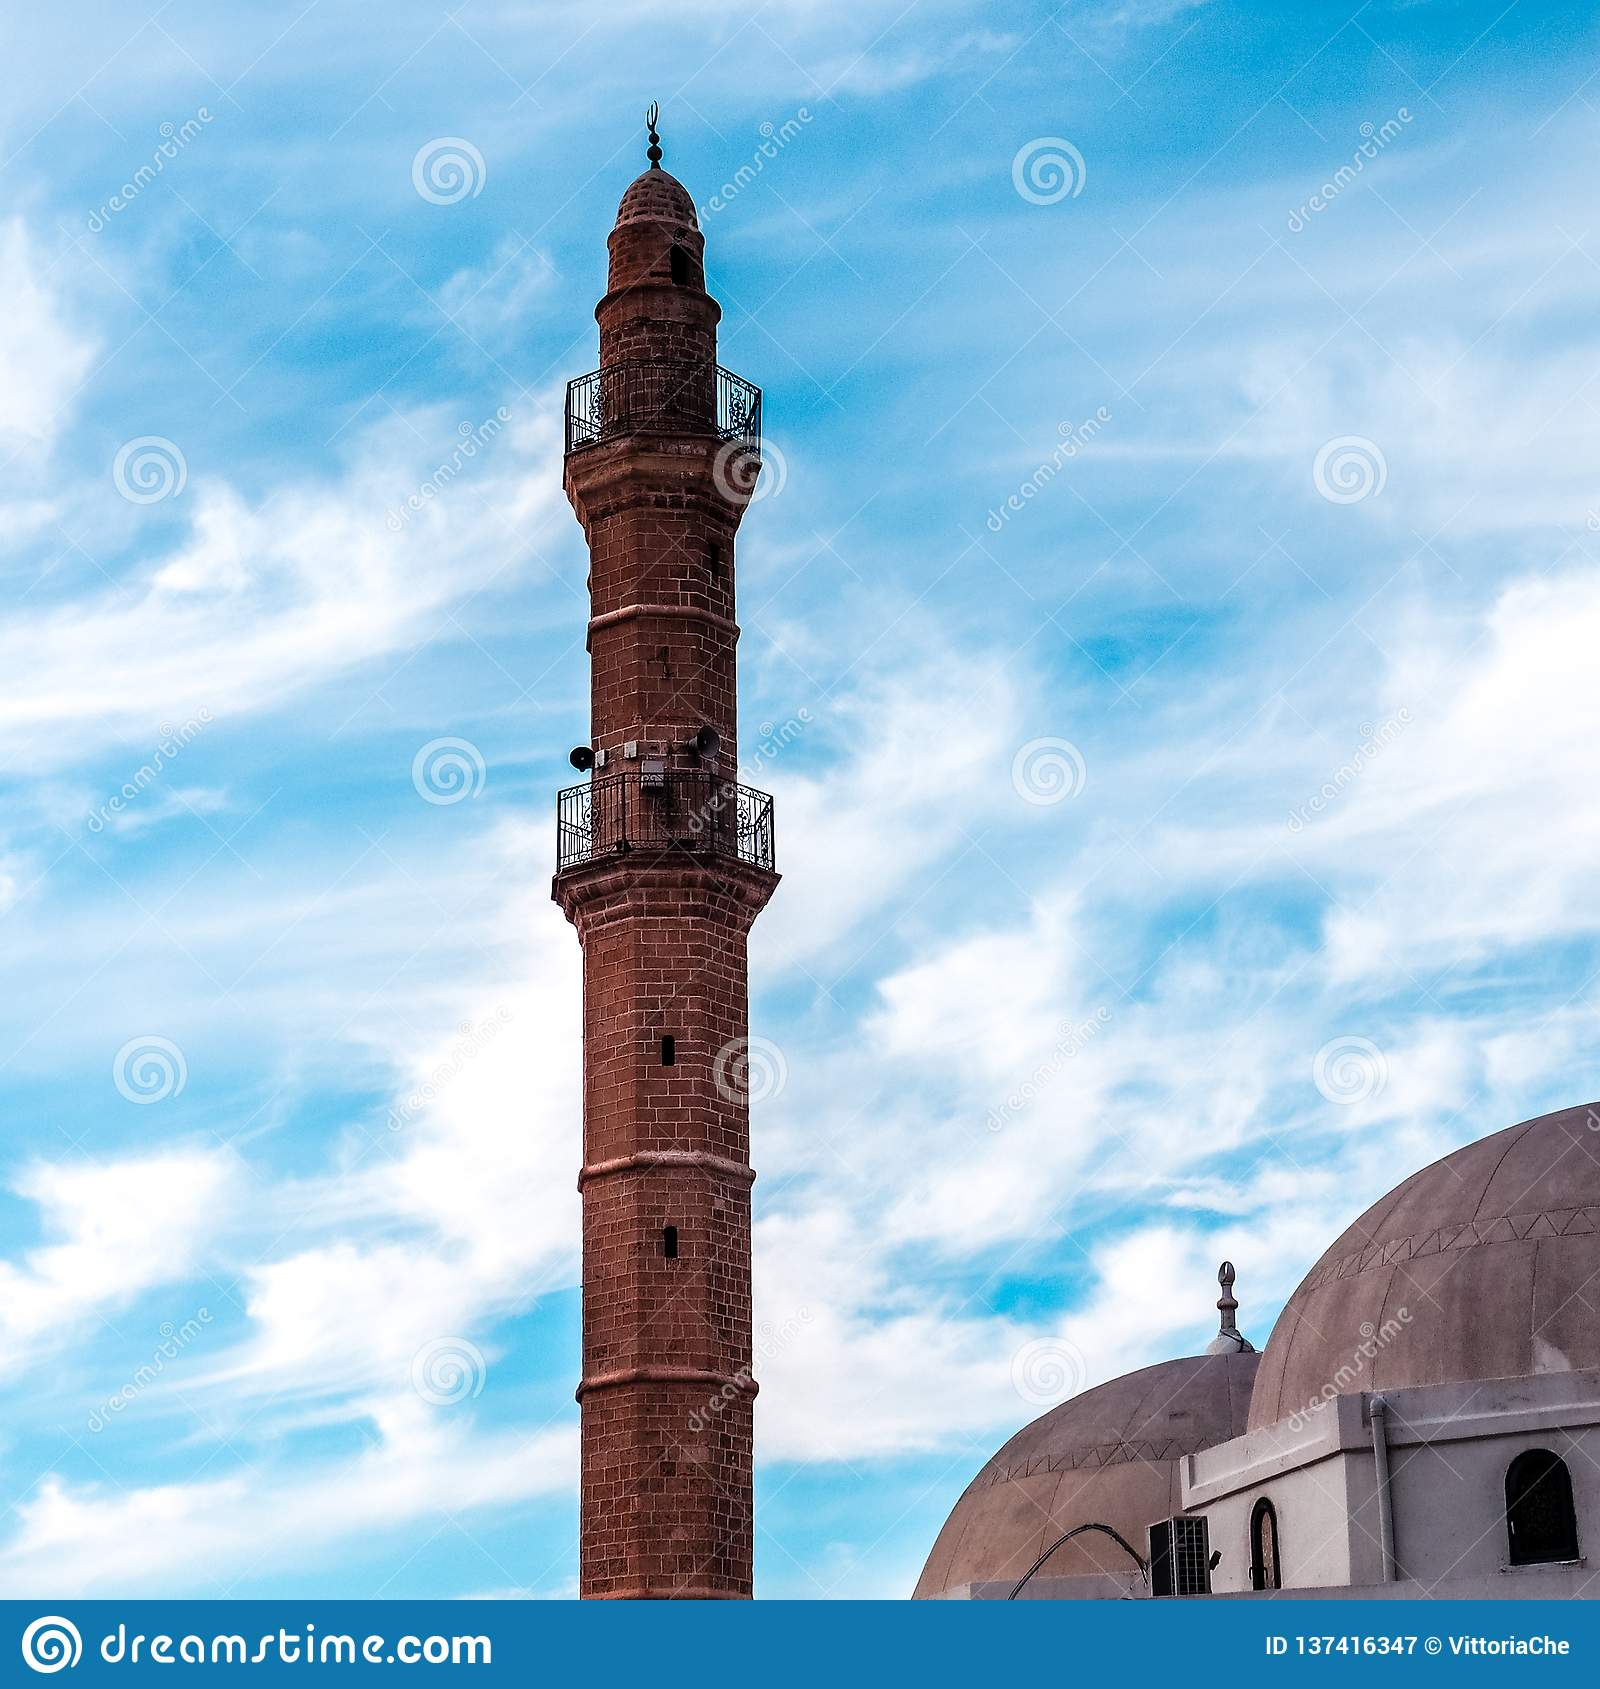 Tower of Bahr Mosque or Sea Mosque in Old city of Jaffa, Israel. It is the oldest extant mosque in Jaffa, Israel